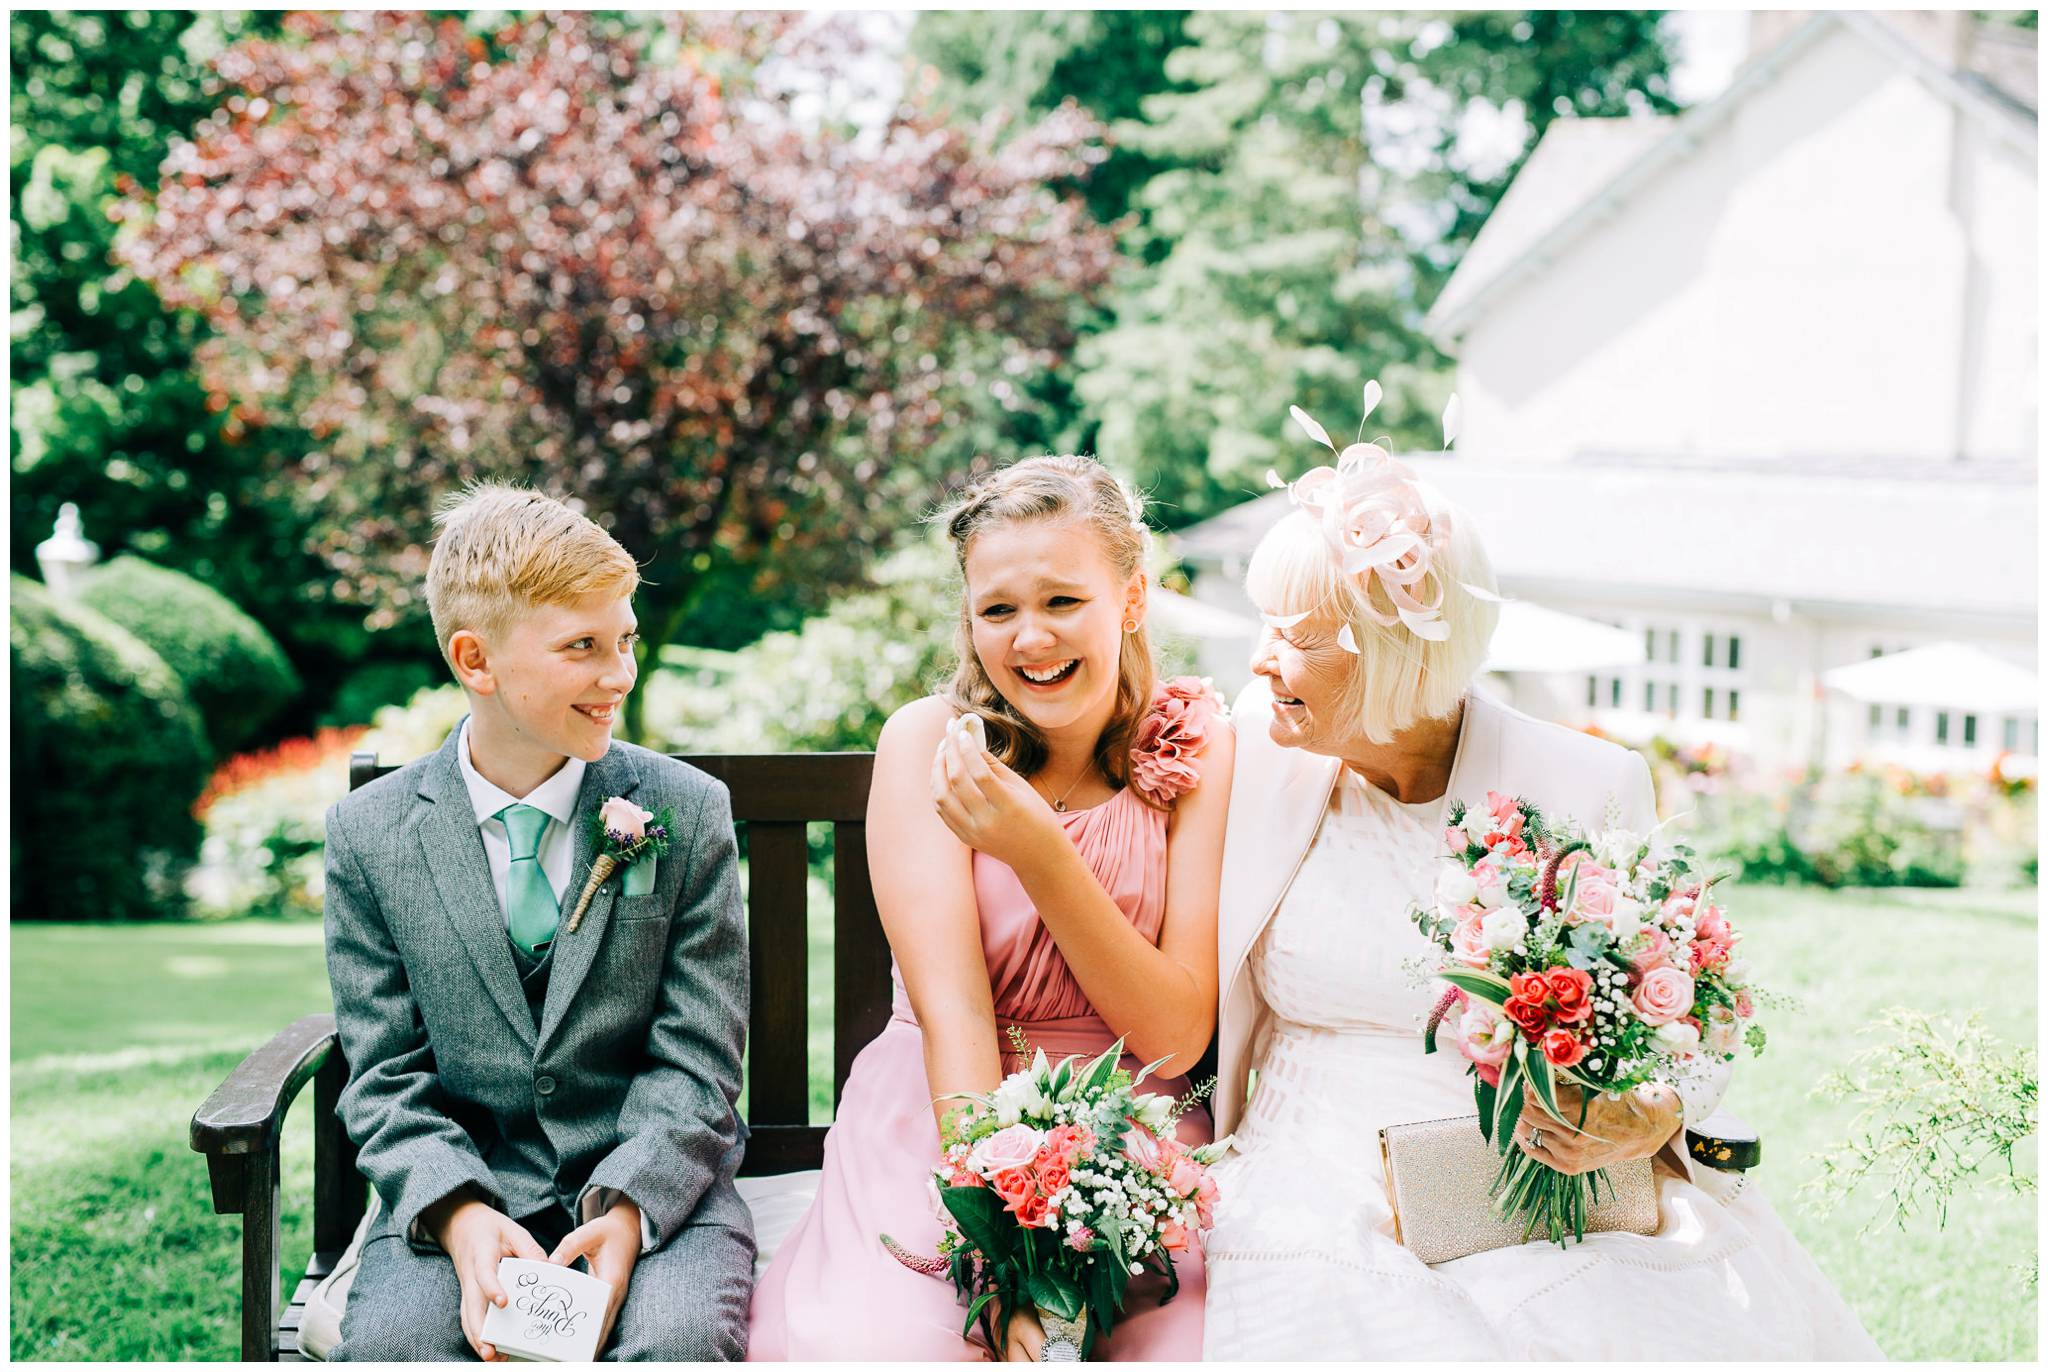 Natural wedding photography Manchester - Clare Robinson Photography_0188.jpg